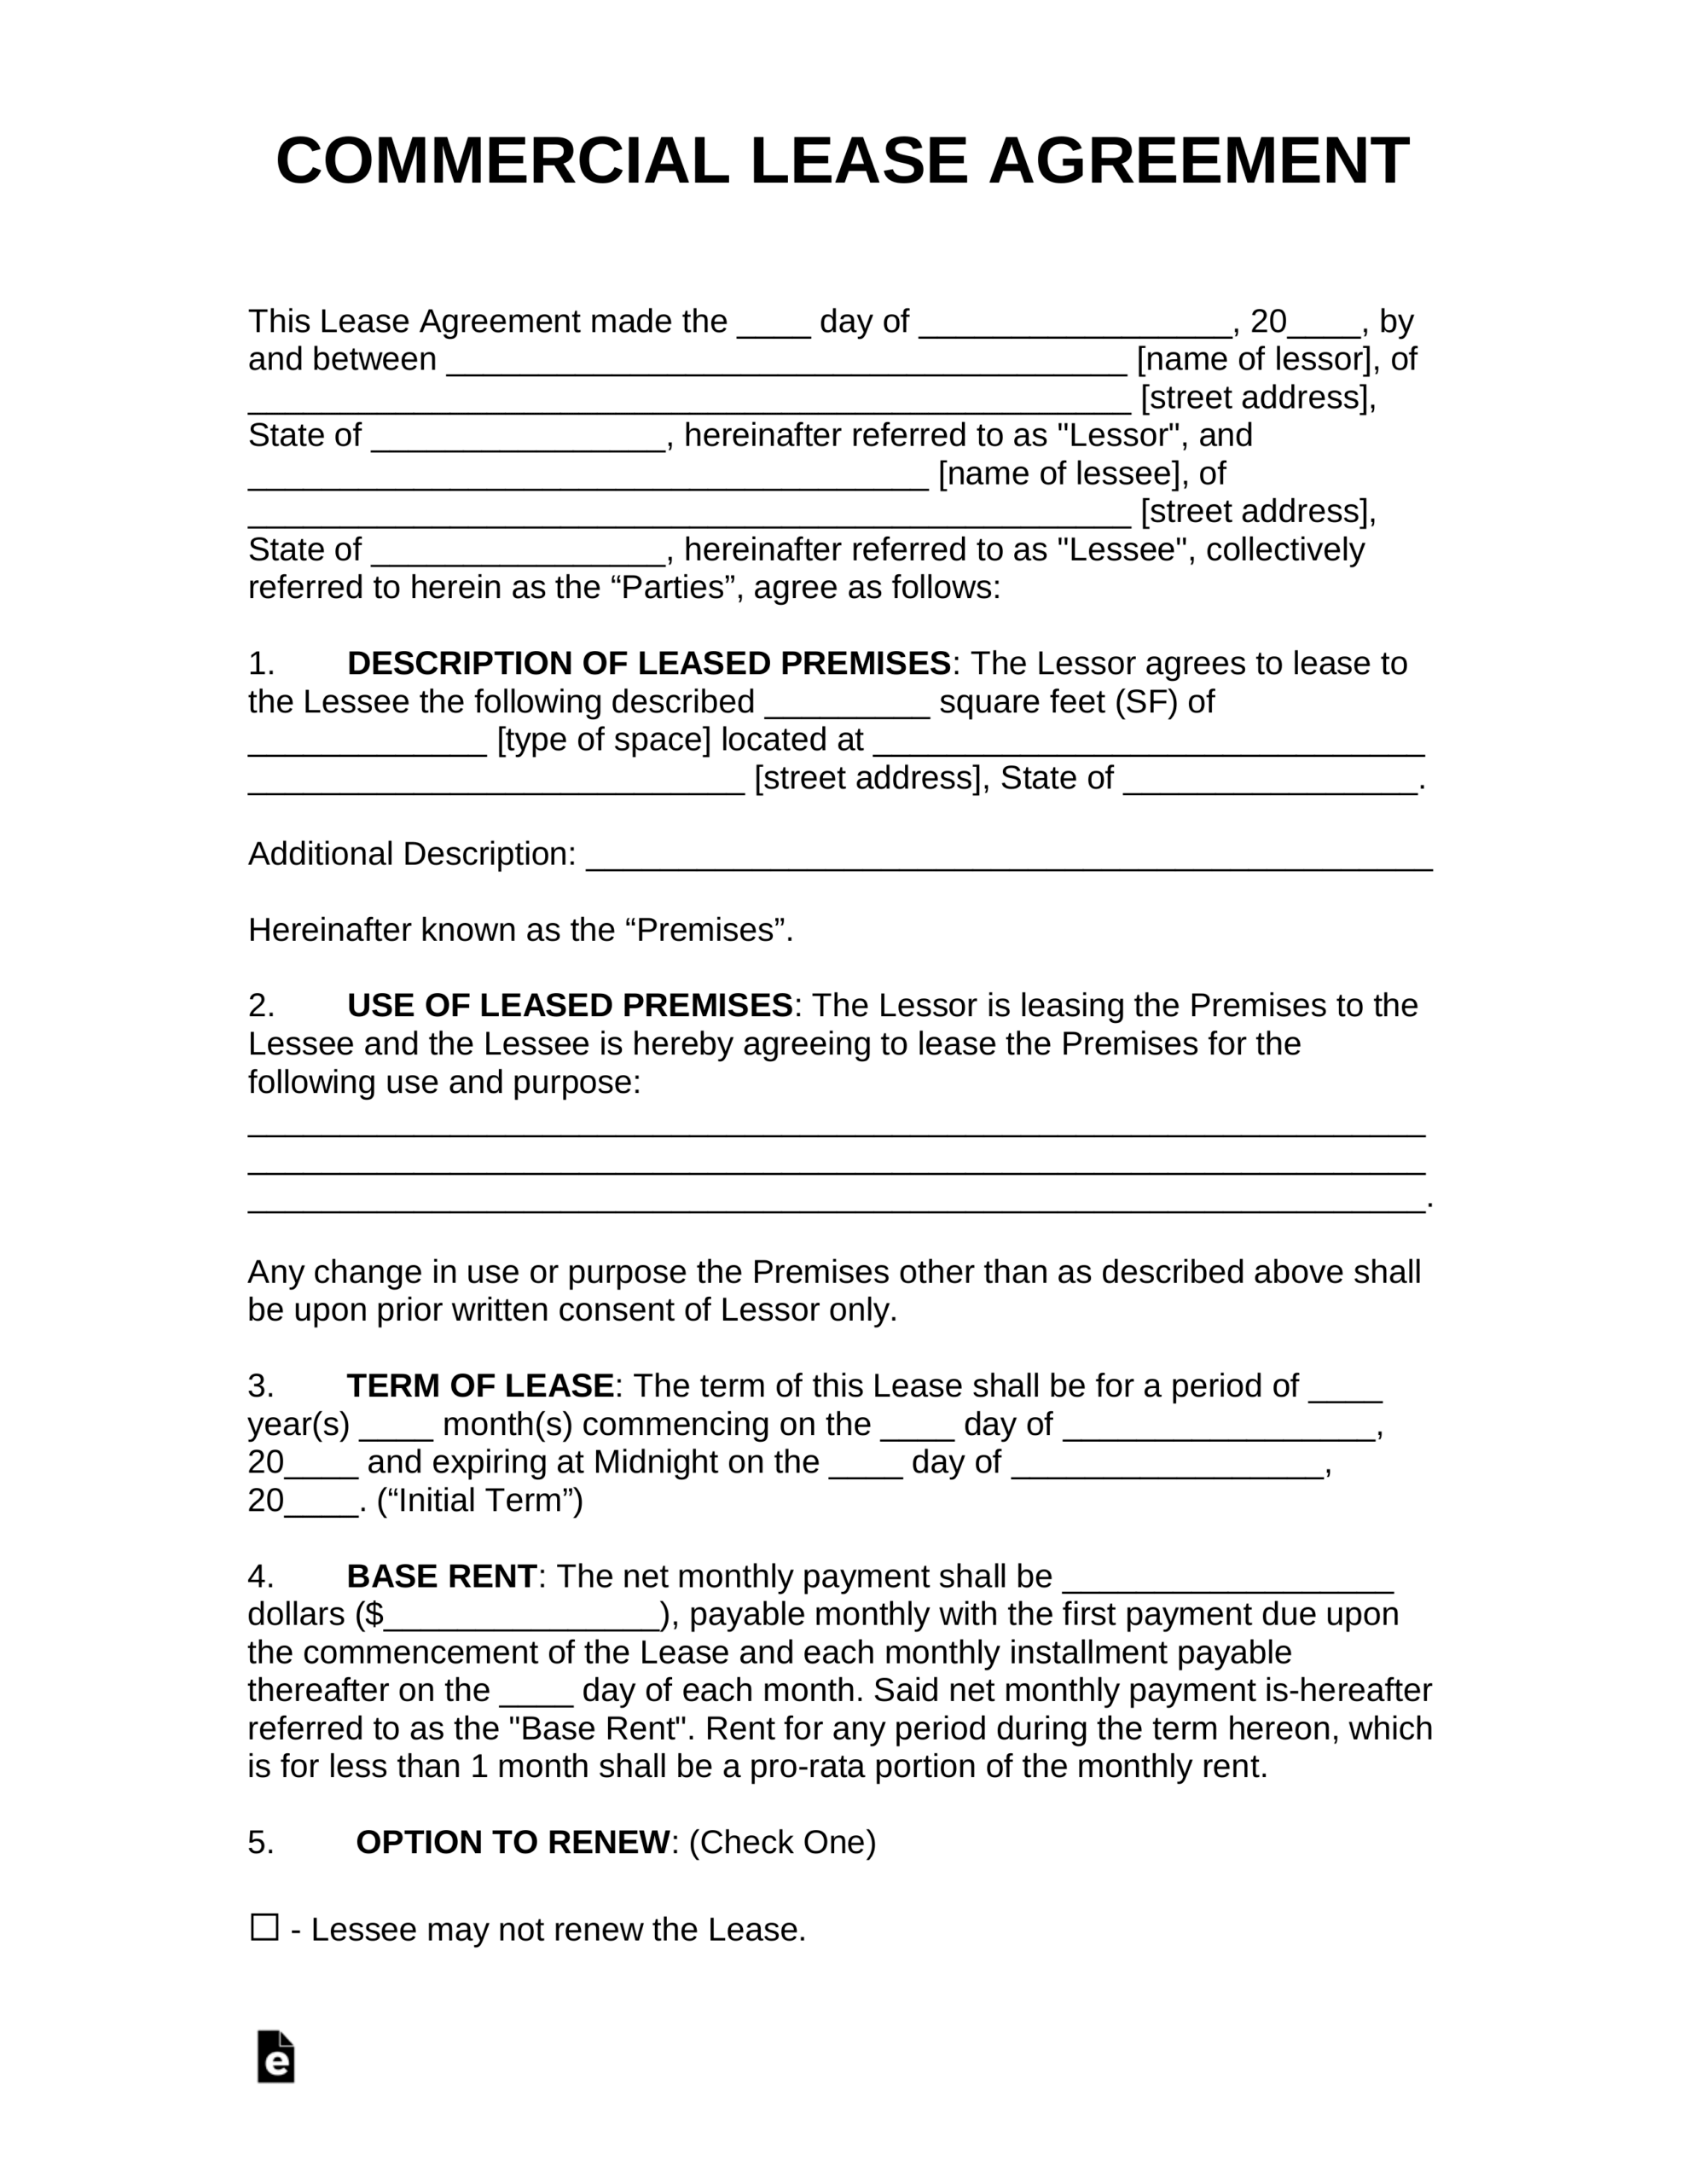 Free Commercial Rental Lease Agreement Templates - Pdf Pertaining To Business Lease Agreement Template Free